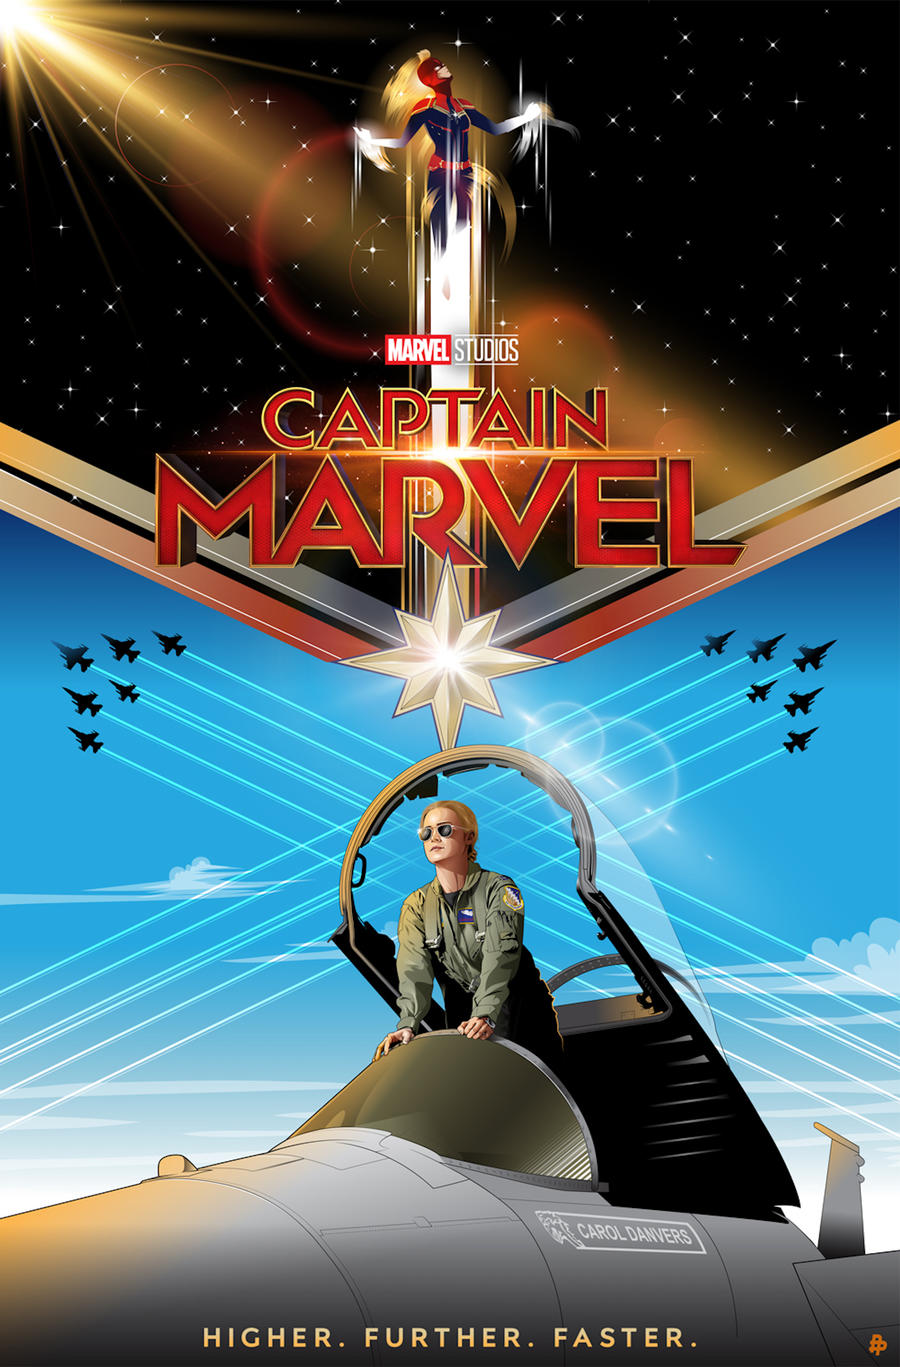 Captain Marvel Poster Art by Cryssy Cheung